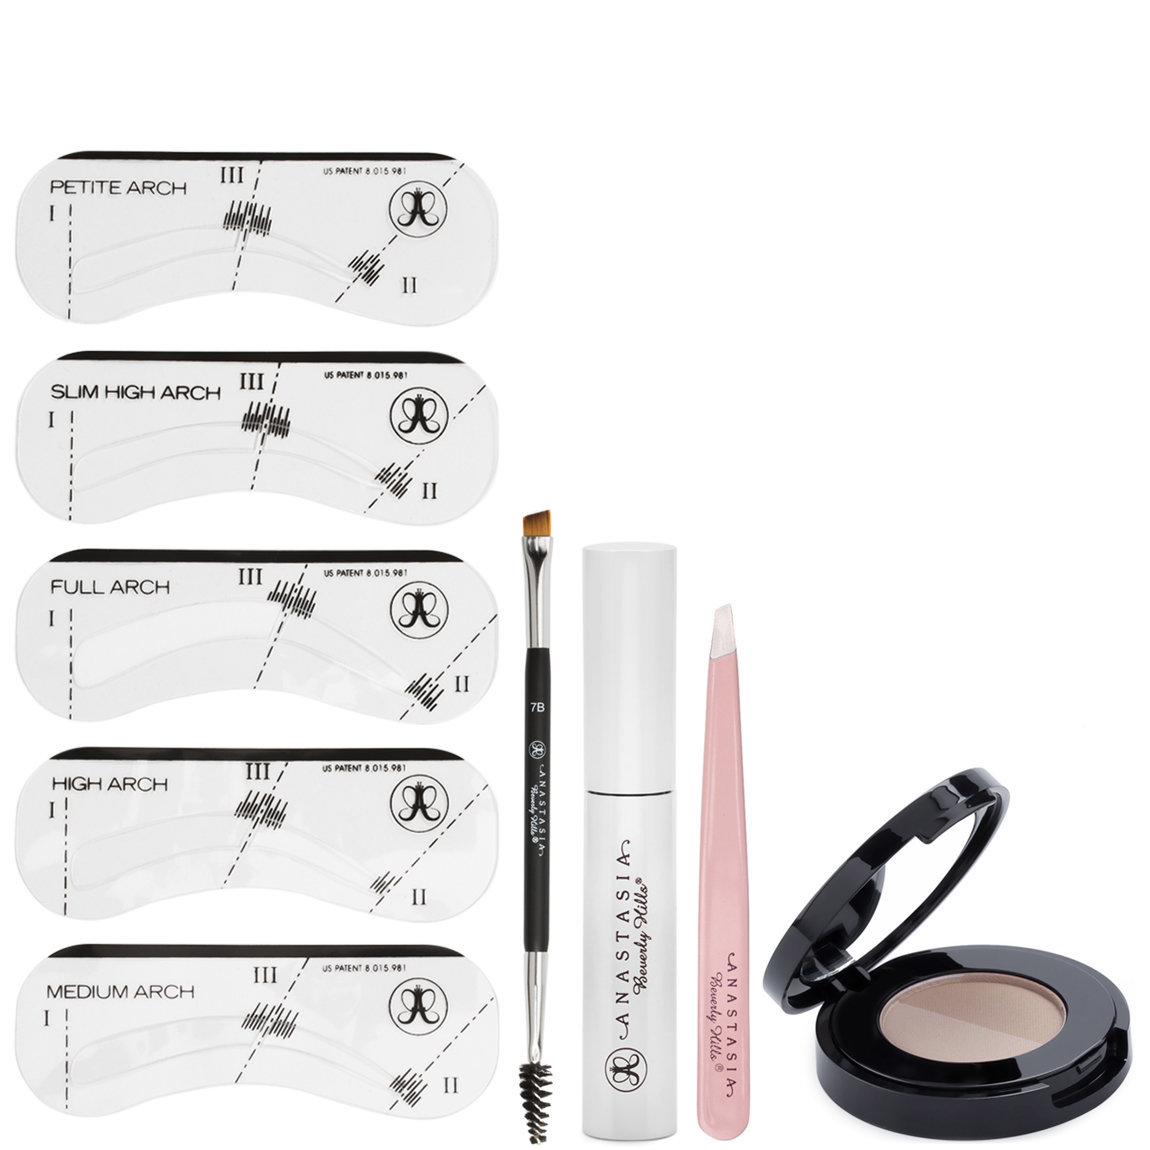 Anastasia Beverly Hills Brow Kit Taupe alternative view 1.